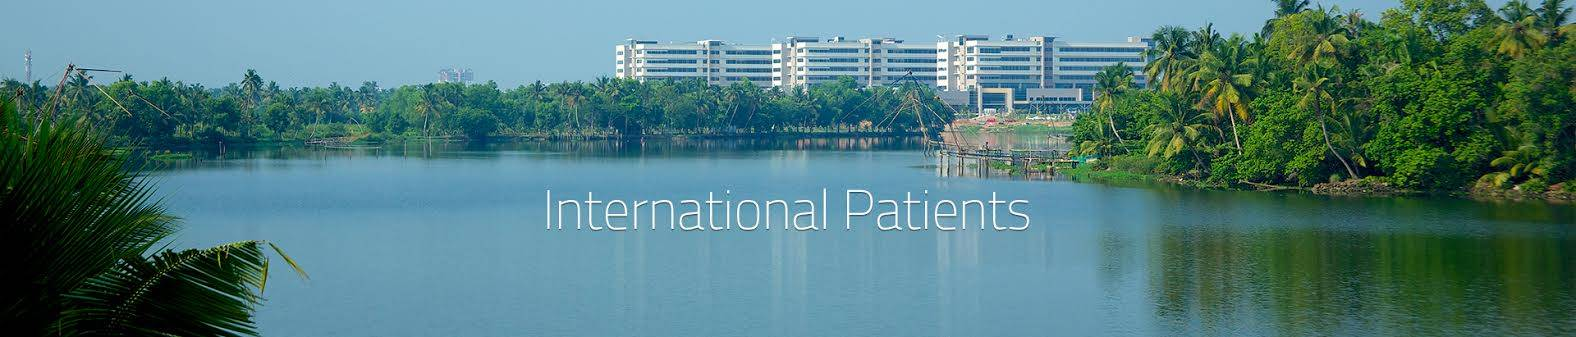 International-patients-slider